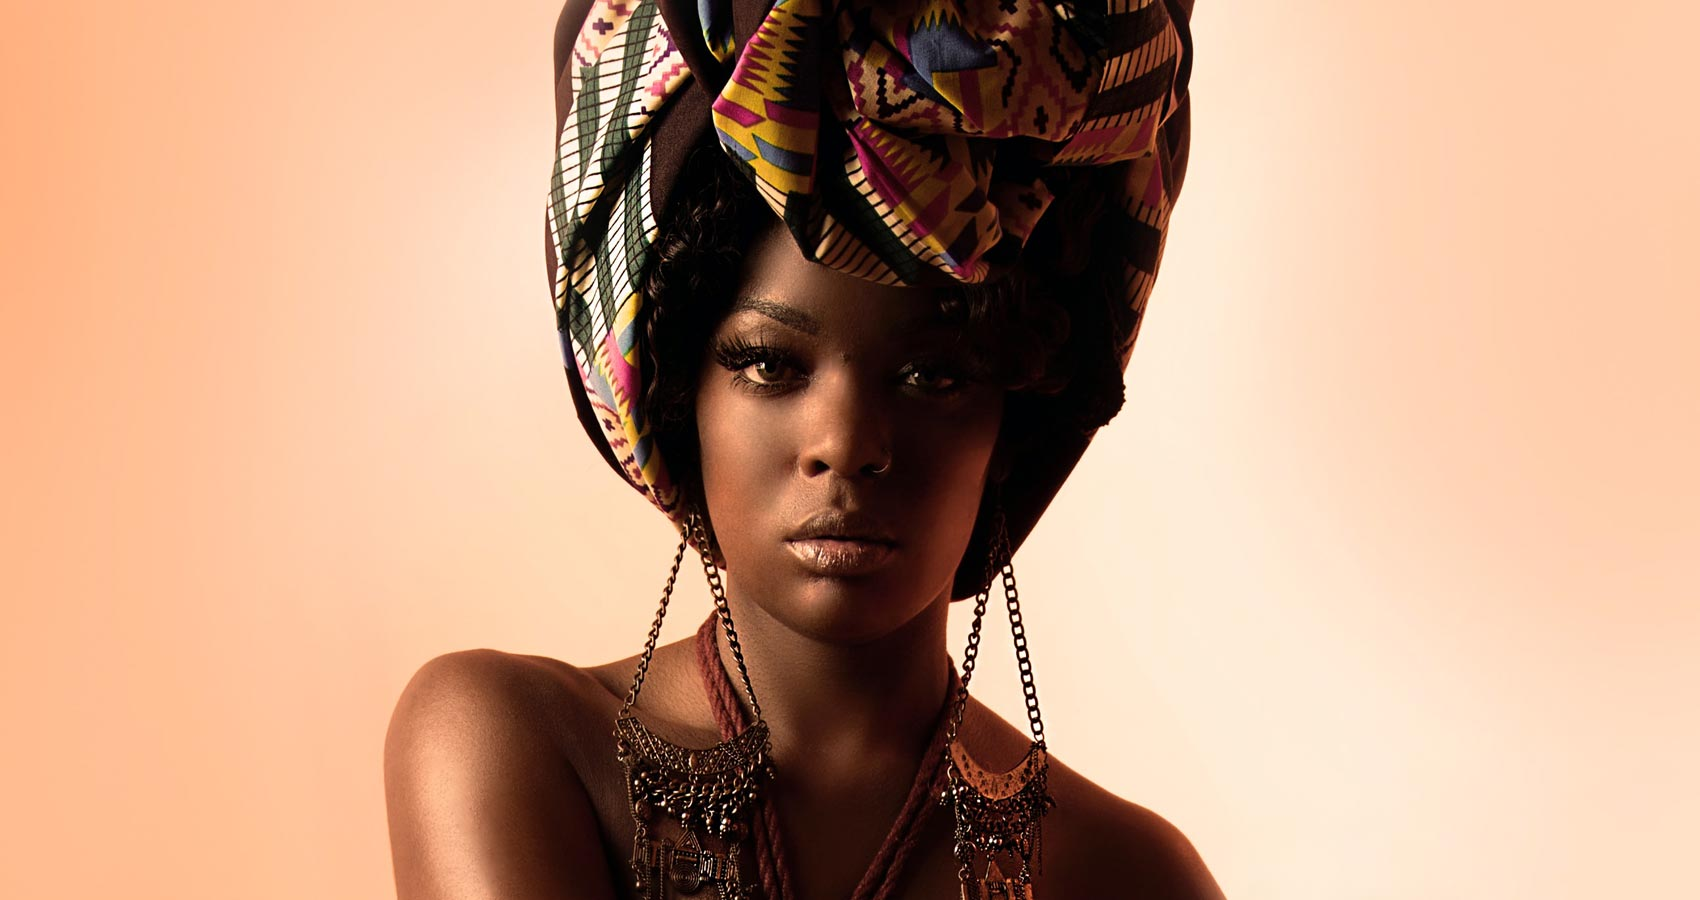 African Woman, poetry written by Ndilika Oluebube at Spillwords.com